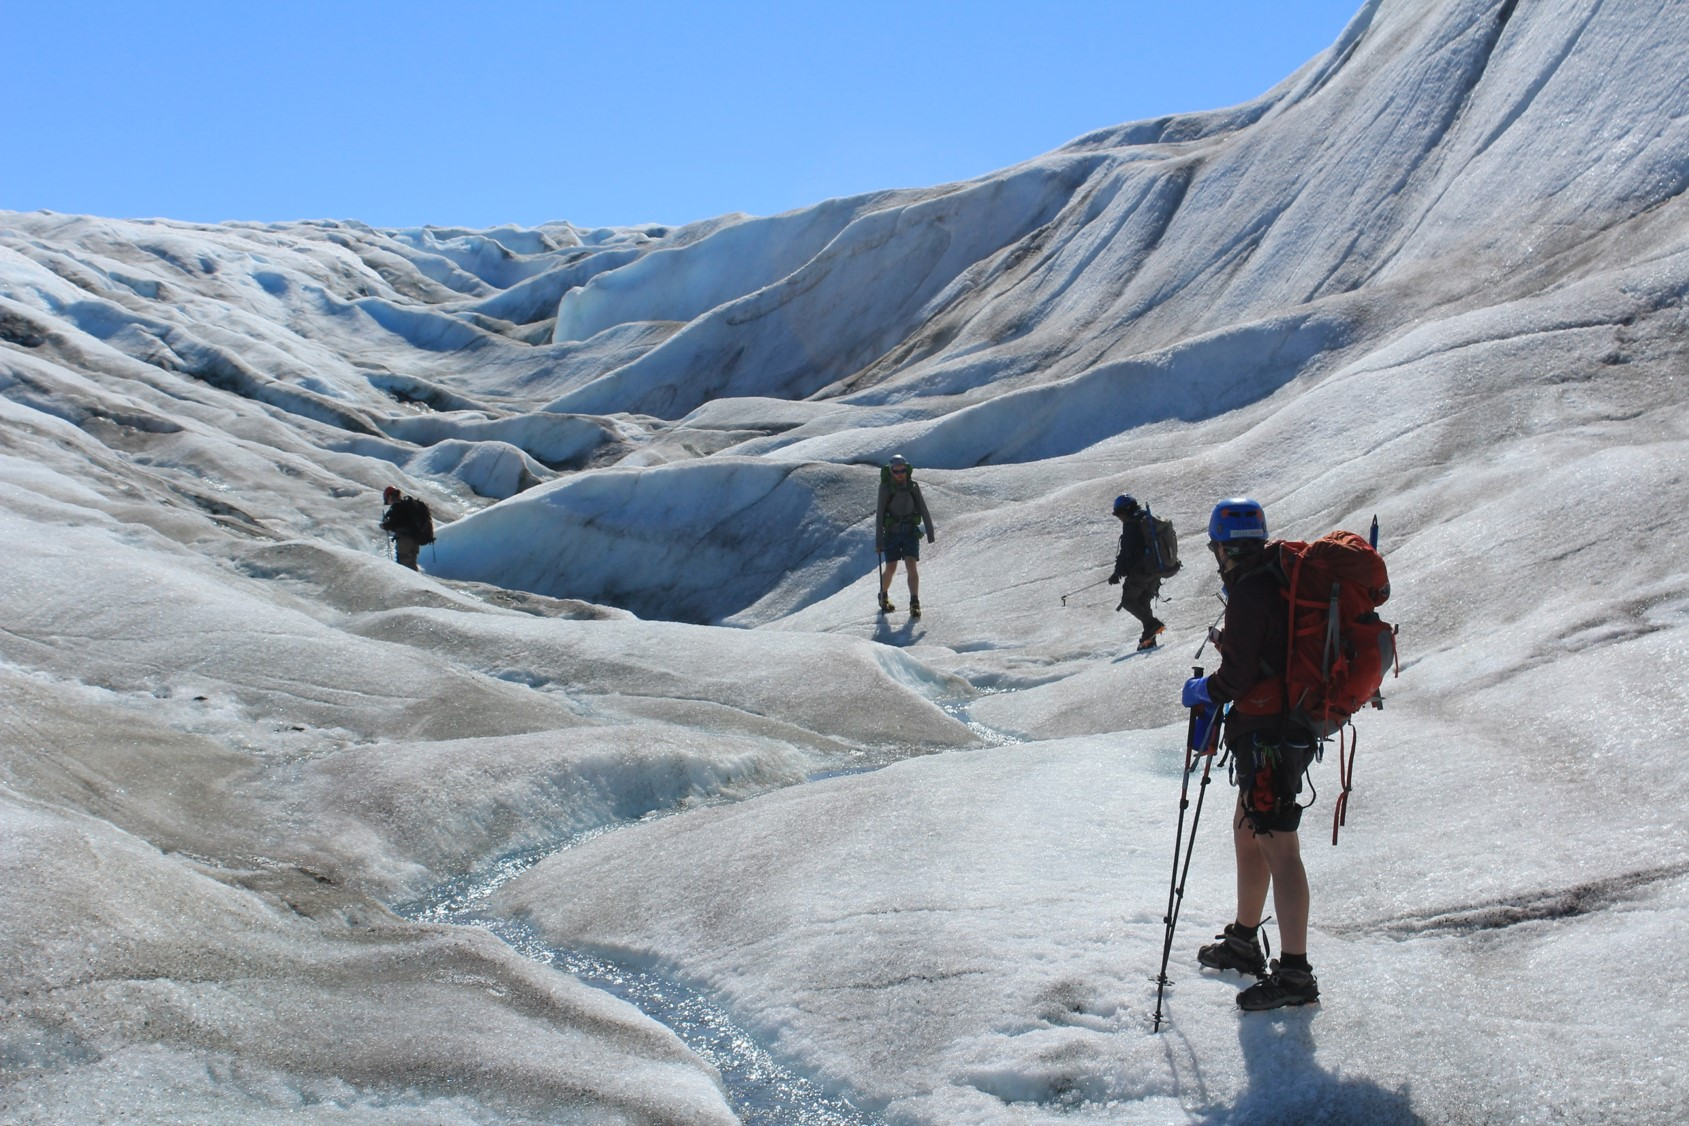 Biogeochemistry students traverse a supraglacial stream on the bare ice of the Llewellyn Glacier, looking for a good place to collect meltwater samples. Photo credit: Evan Koncewicz.